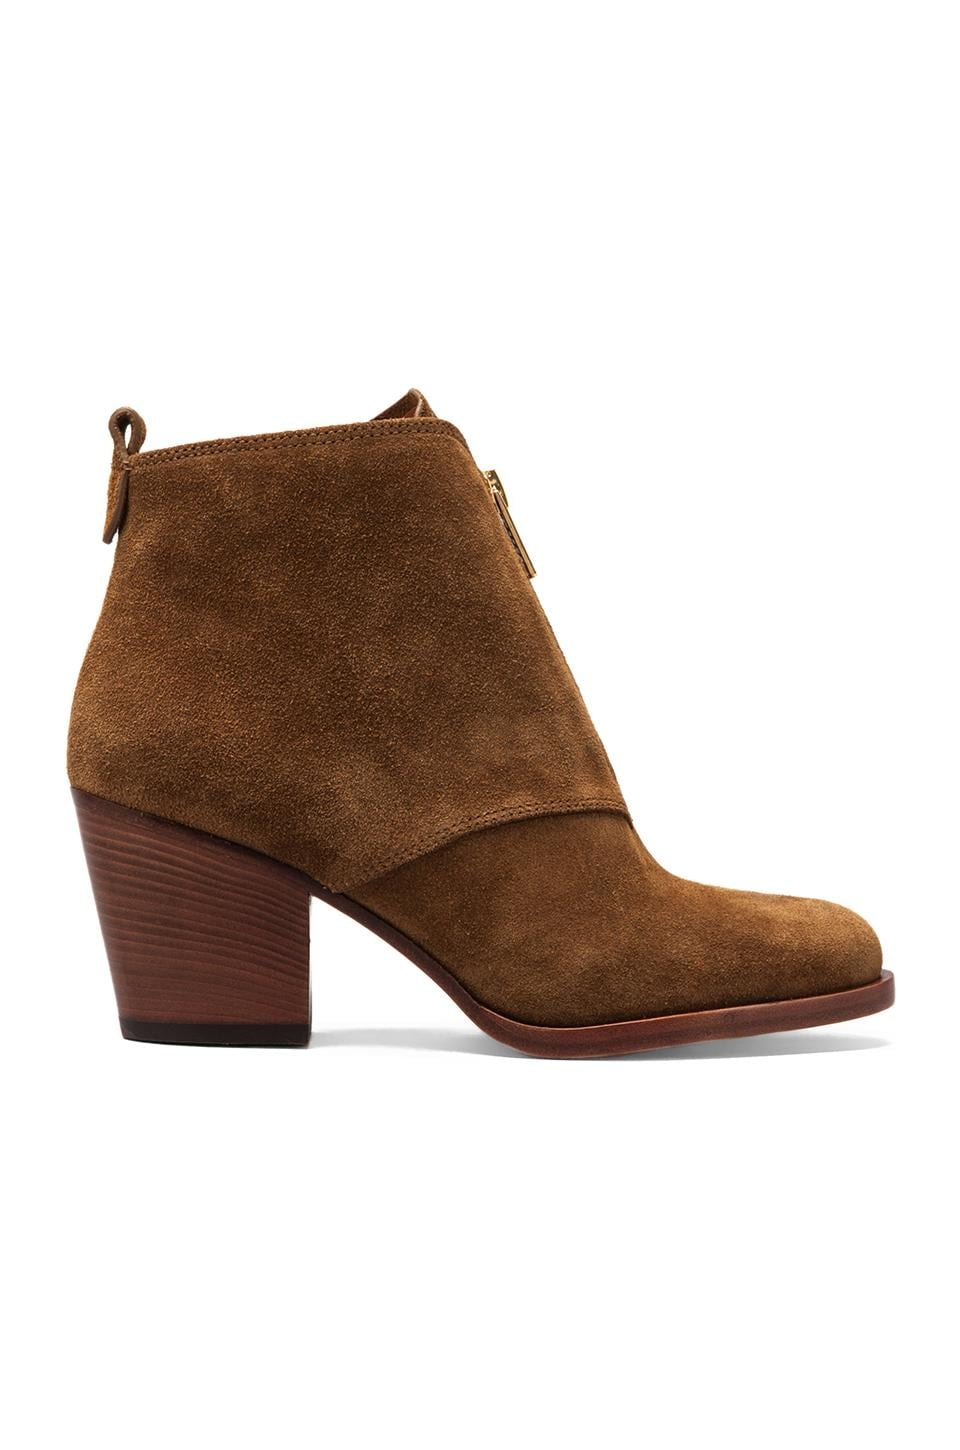 Marc by Marc Jacobs Boy Meets Girl Crosta Ankle Boot in Tan